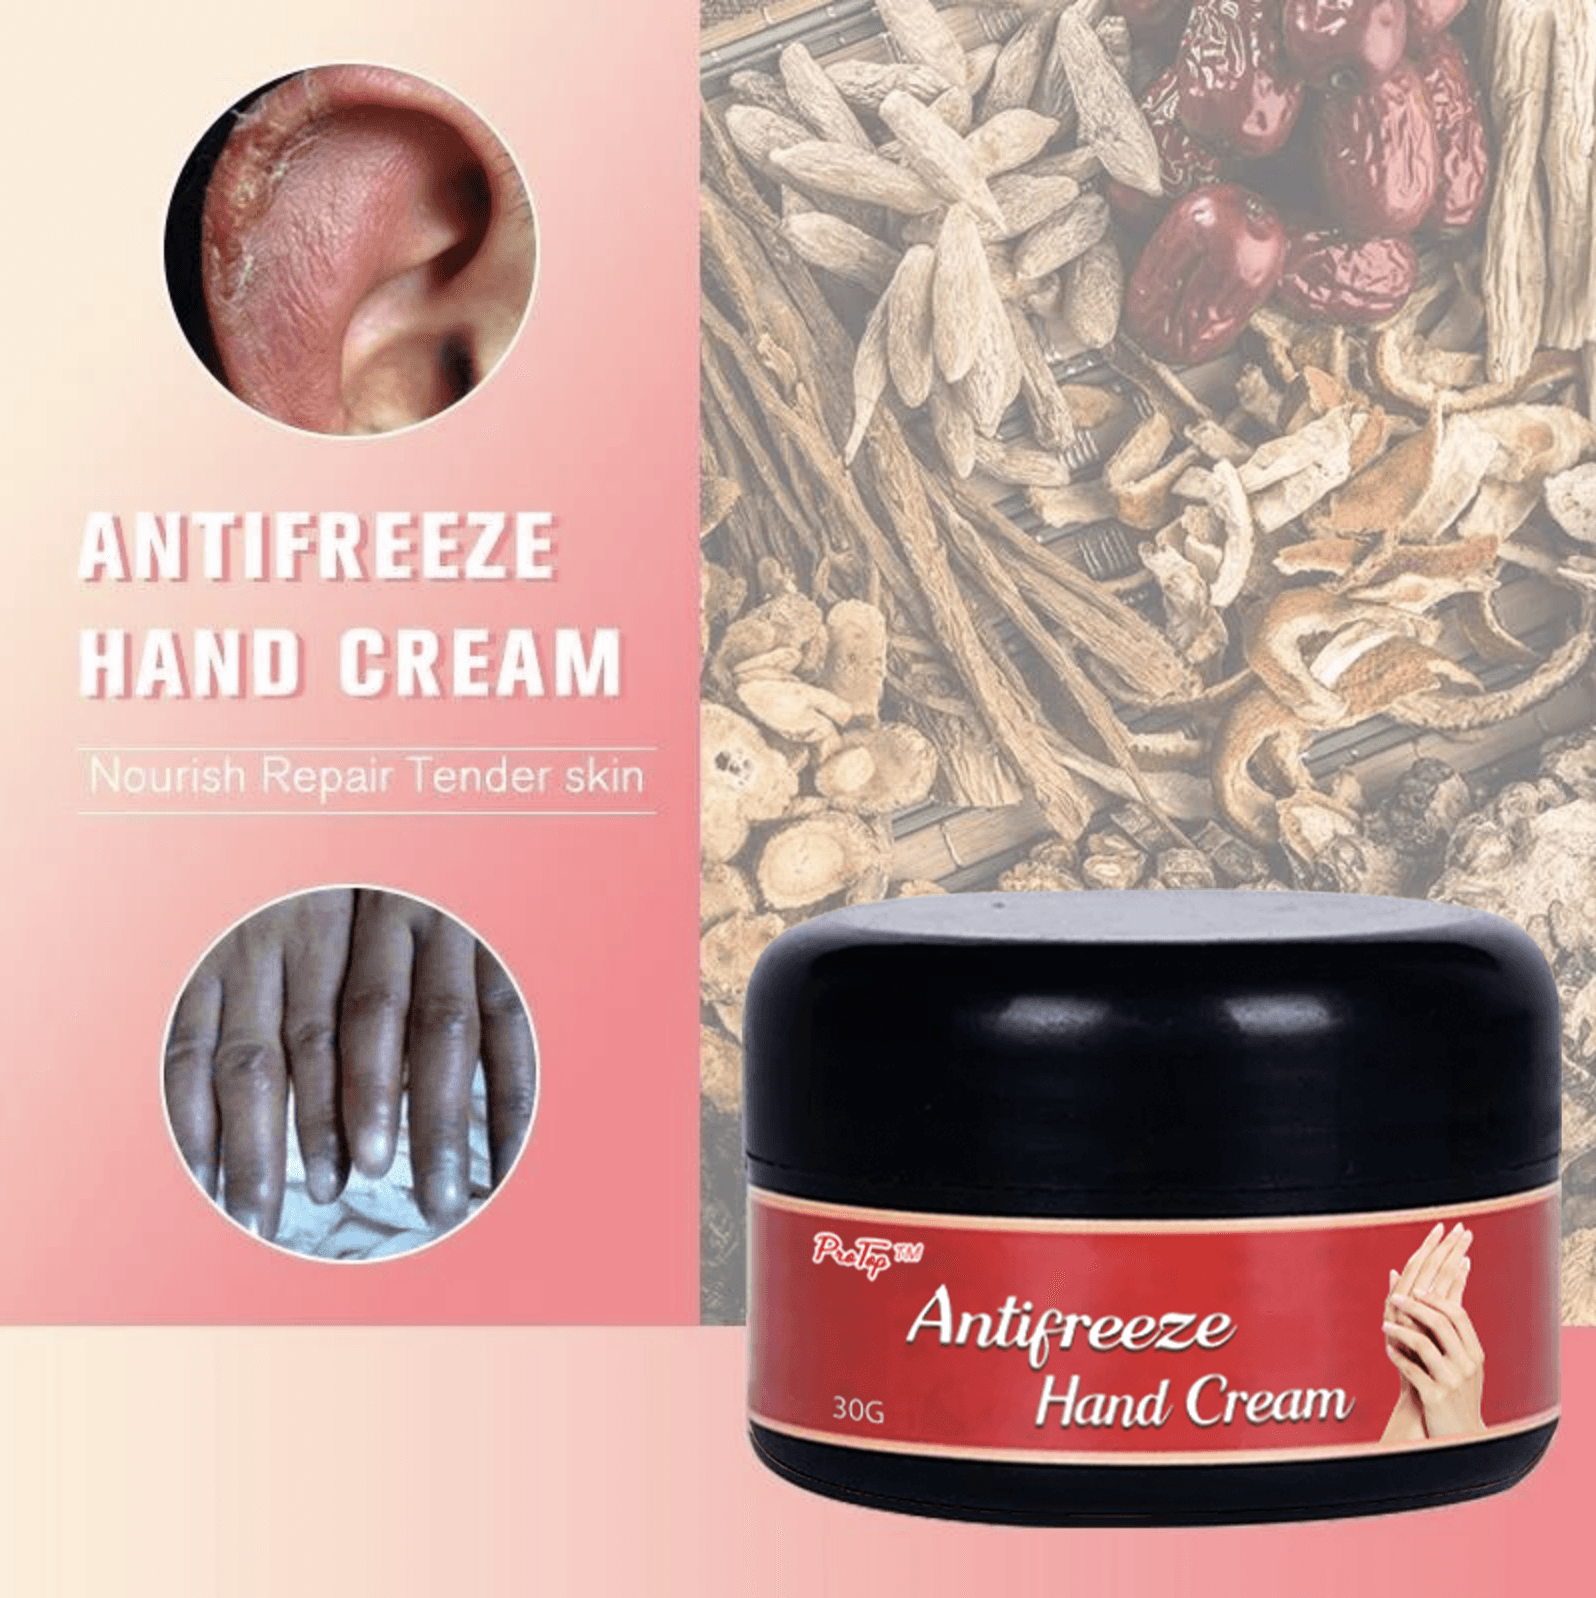 Antifreeze Hand Cream